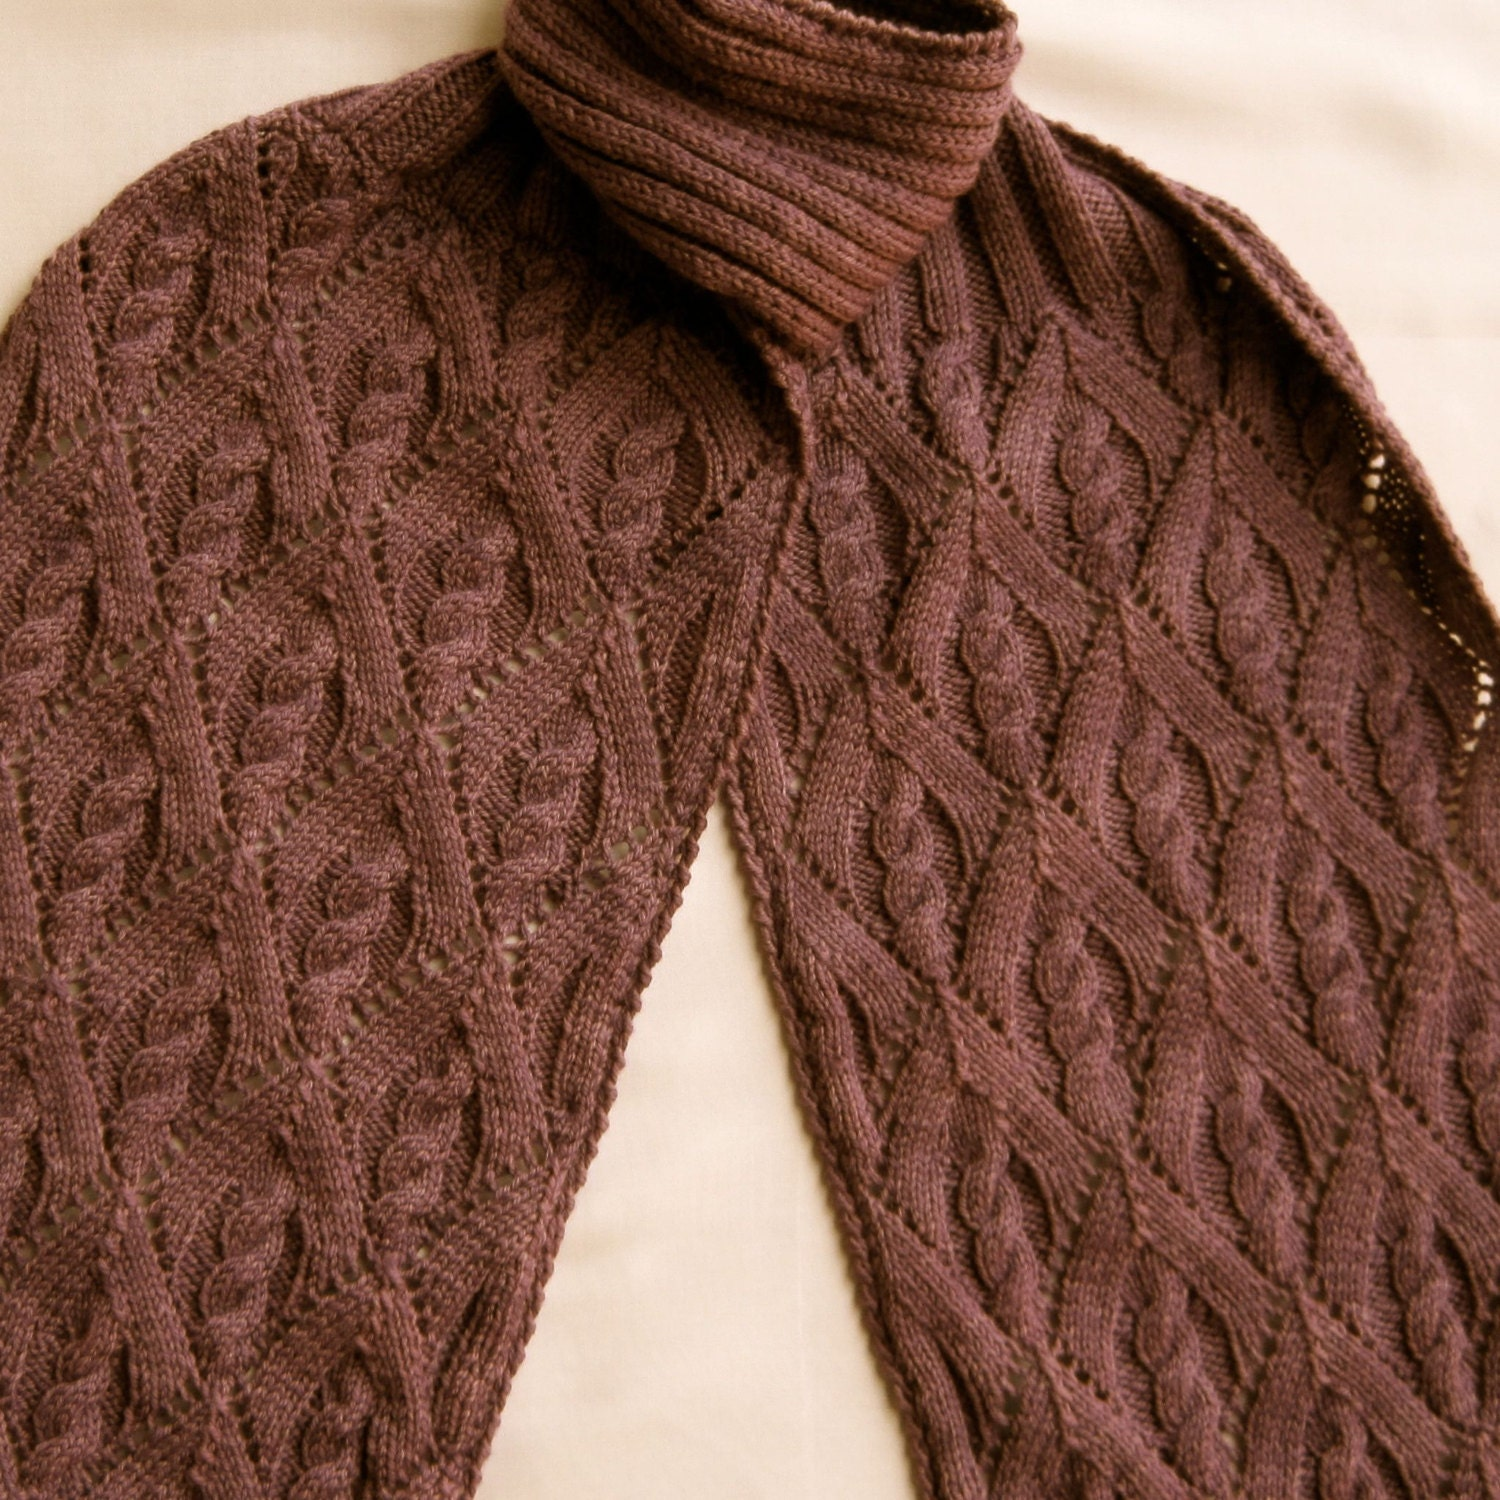 Knit scarf pattern my favorite cable lace turtleneck scarf knit scarf pattern my favorite cable lace turtleneck scarf knitting pattern bankloansurffo Image collections